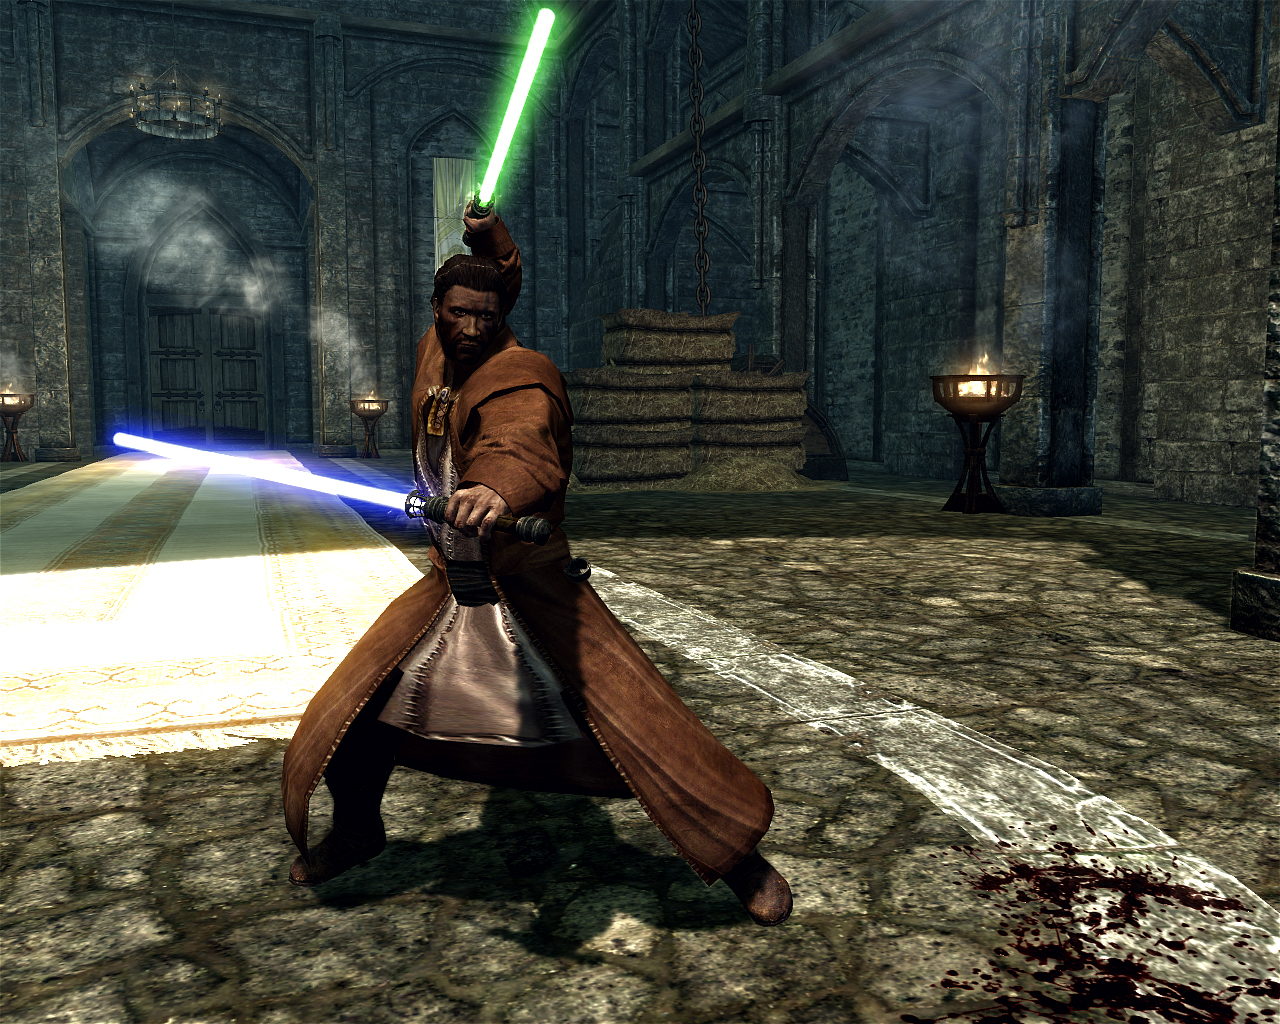 Swg Clone Wars Mod: Mods To Turn Skyrim Into Star Wars